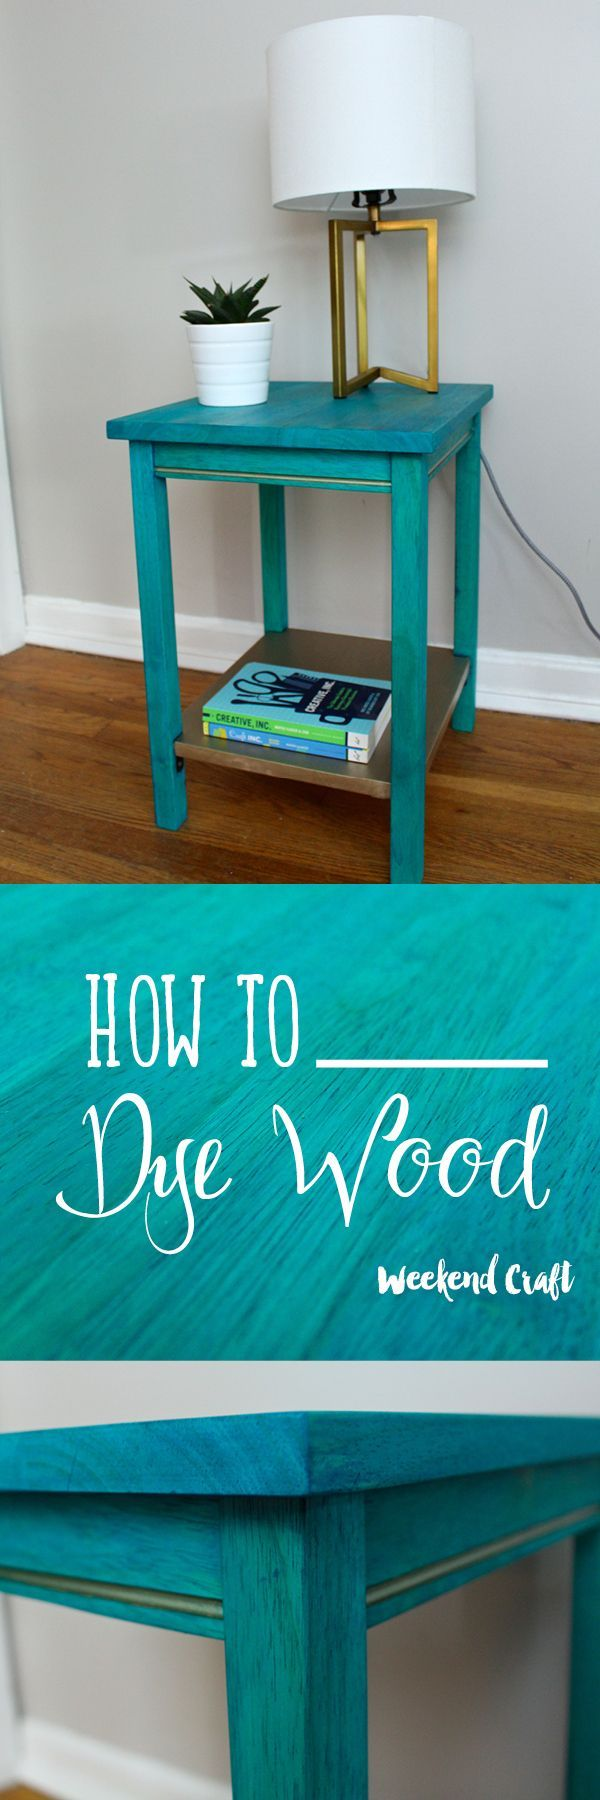 easy diy furniture ideas. 1028 best wood furniture images on pinterest and projects easy diy ideas w